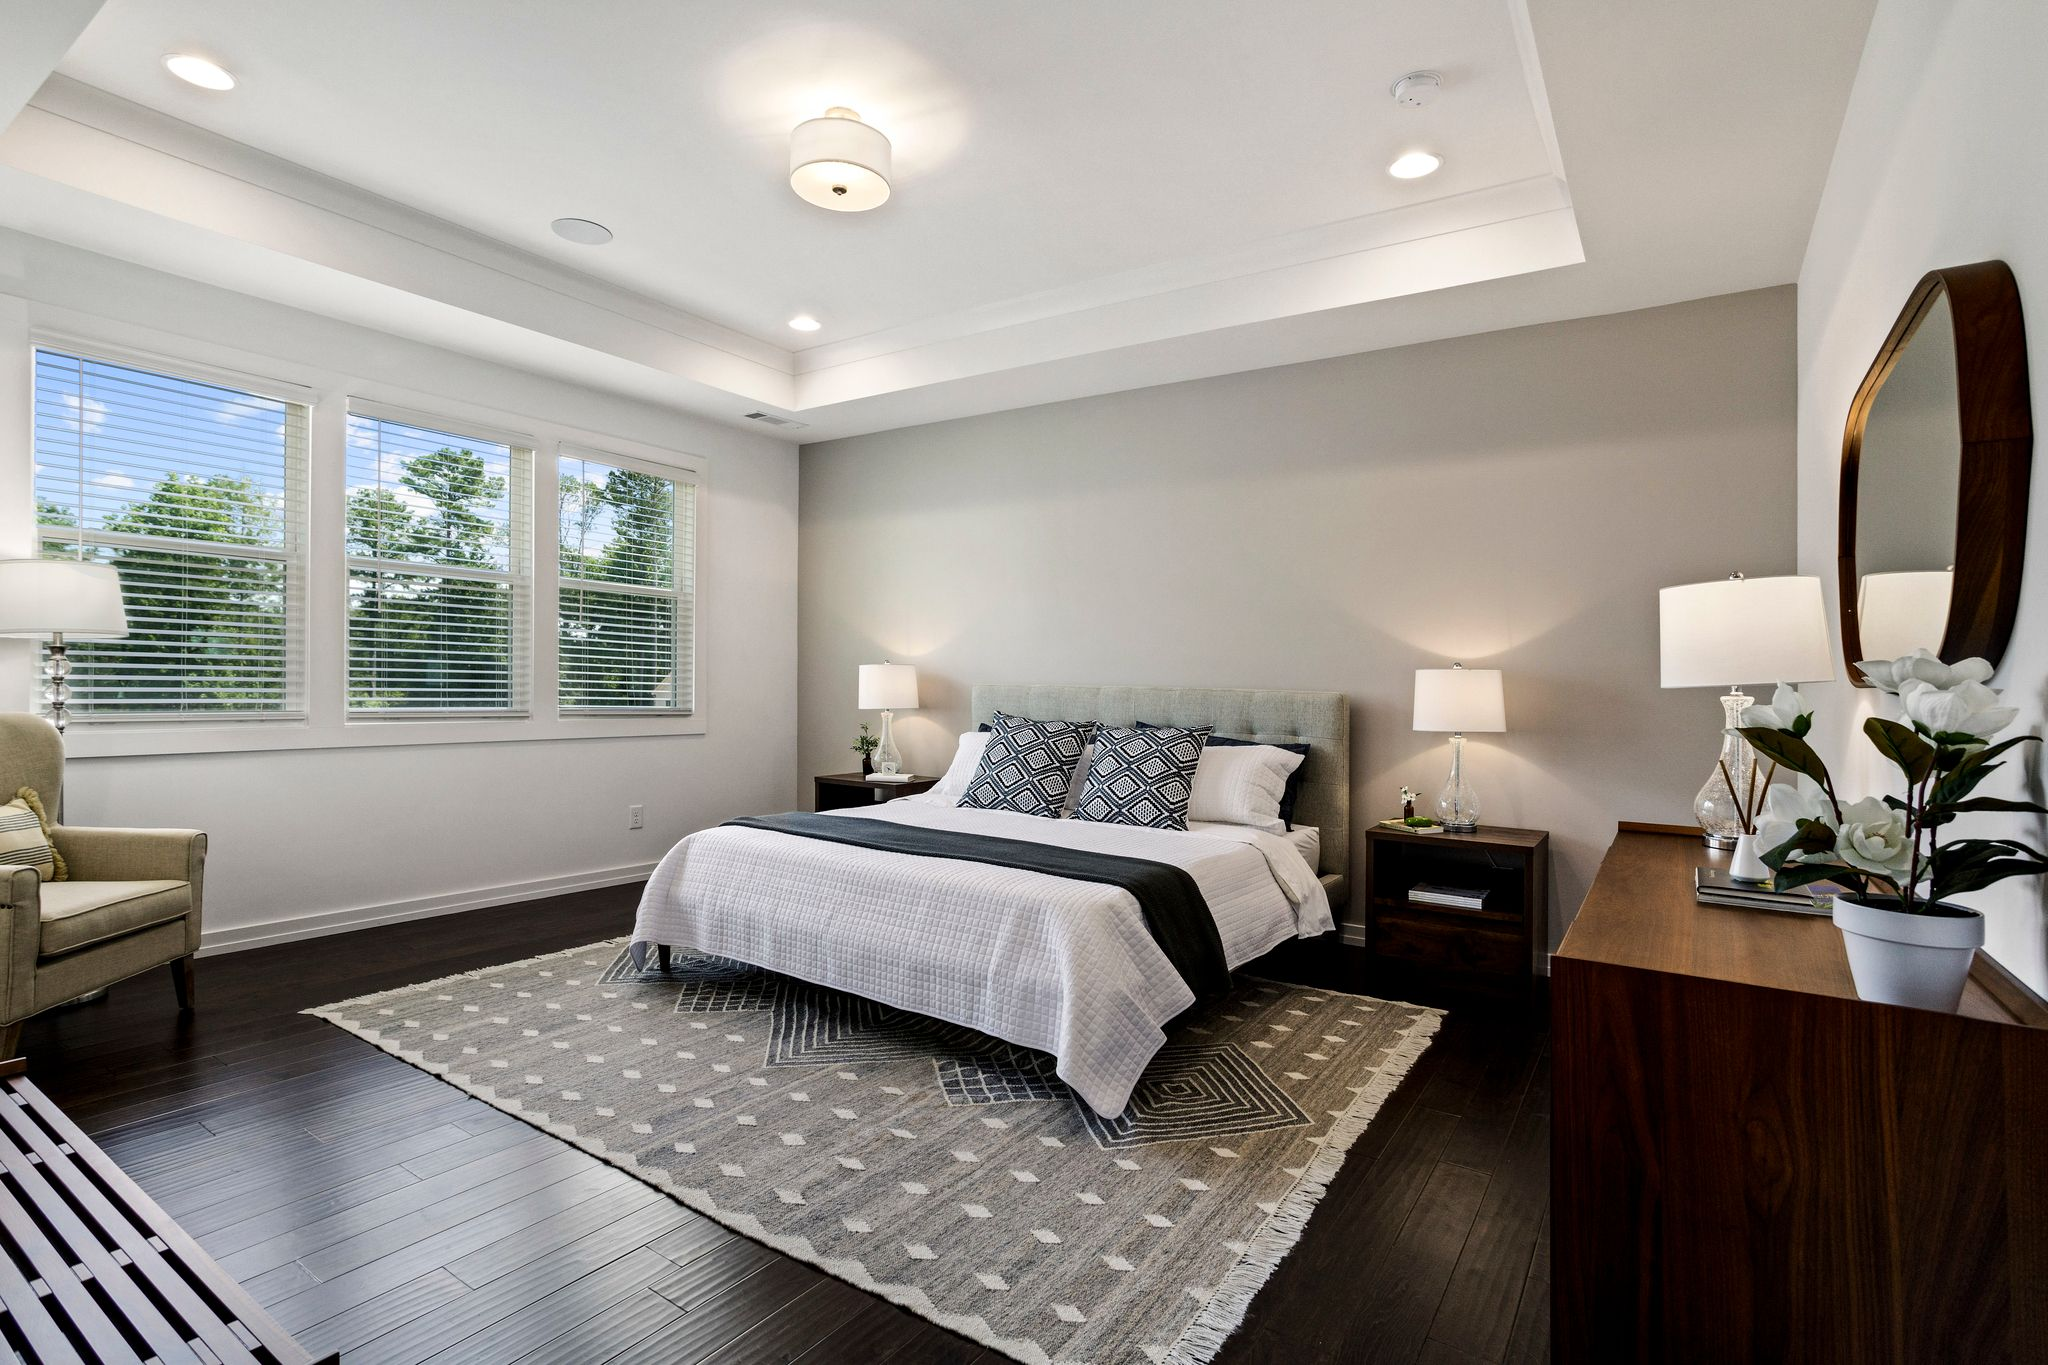 'The Enclave at Belvedere' by Minerva Homes in Atlanta